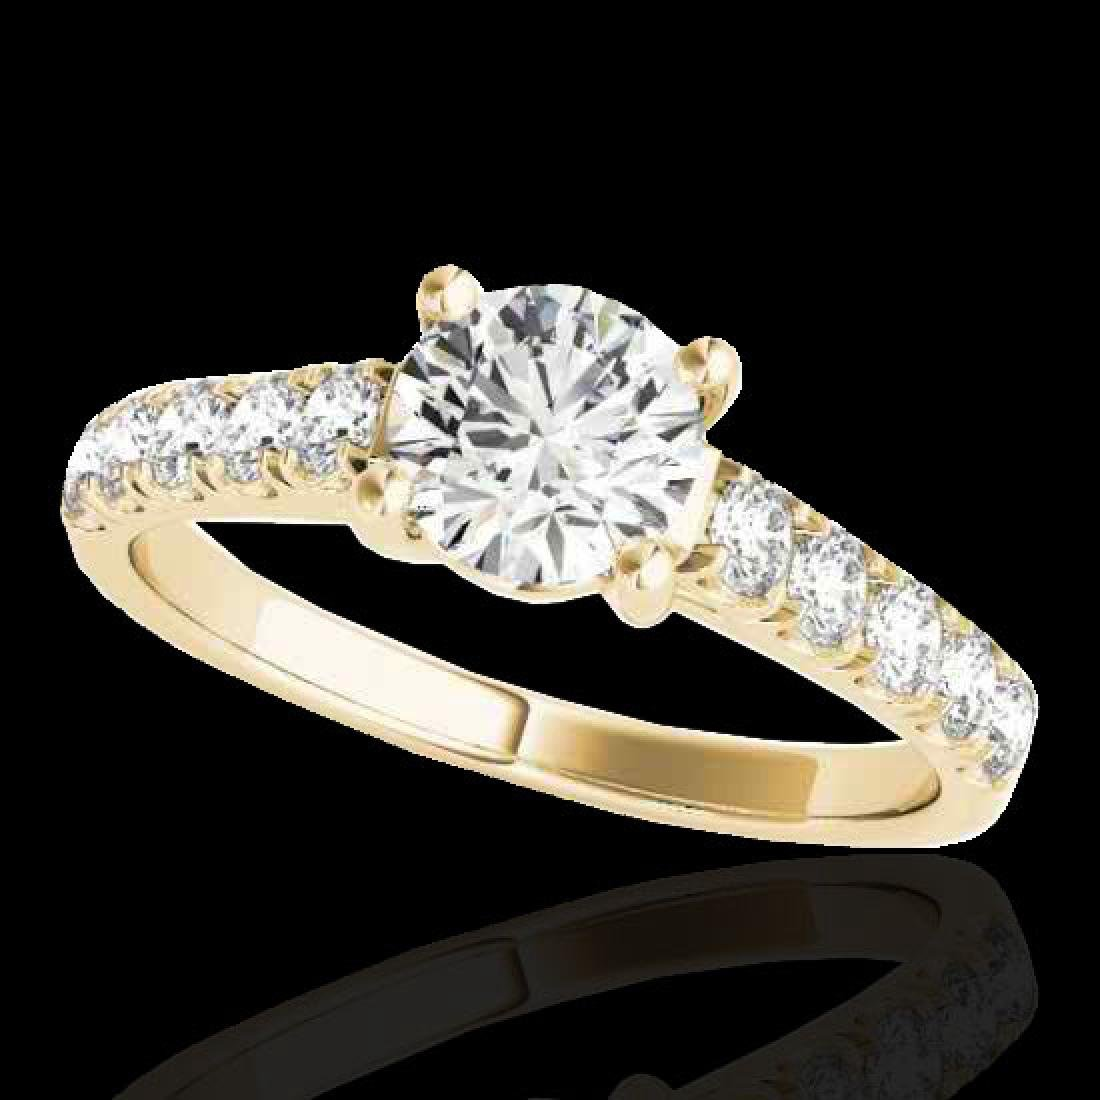 2.1 CTW G-Si Certified Diamond Bridal Solitaire Ring